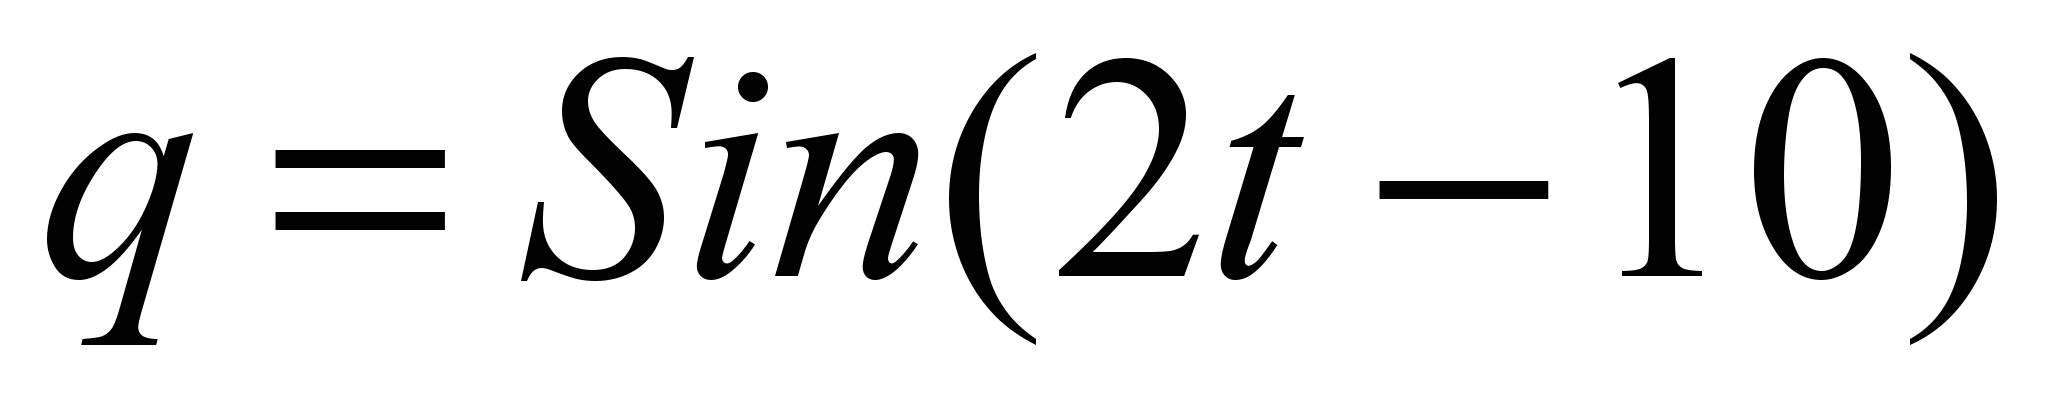 hello_html_m23aa740.png